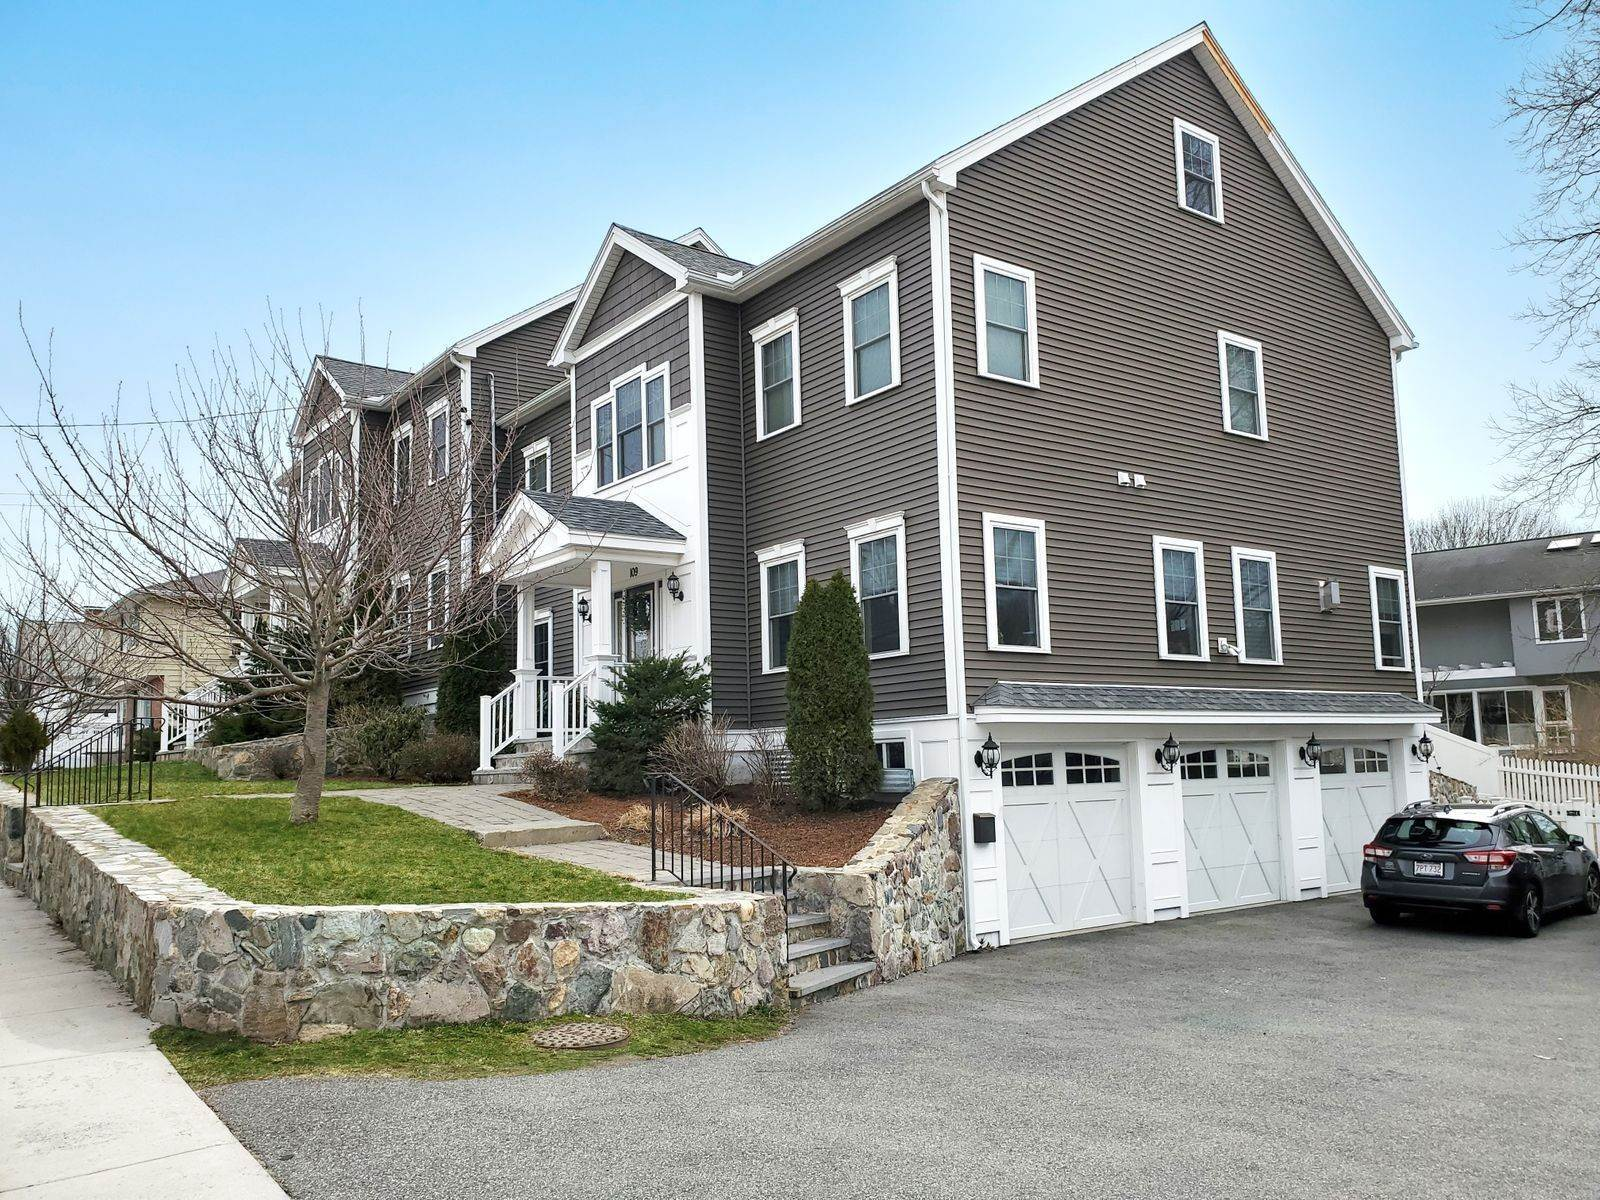 44. Single Family Home for Sale at 109 Waverley Street 109 Waverley St Belmont, Massachusetts,02478 United States